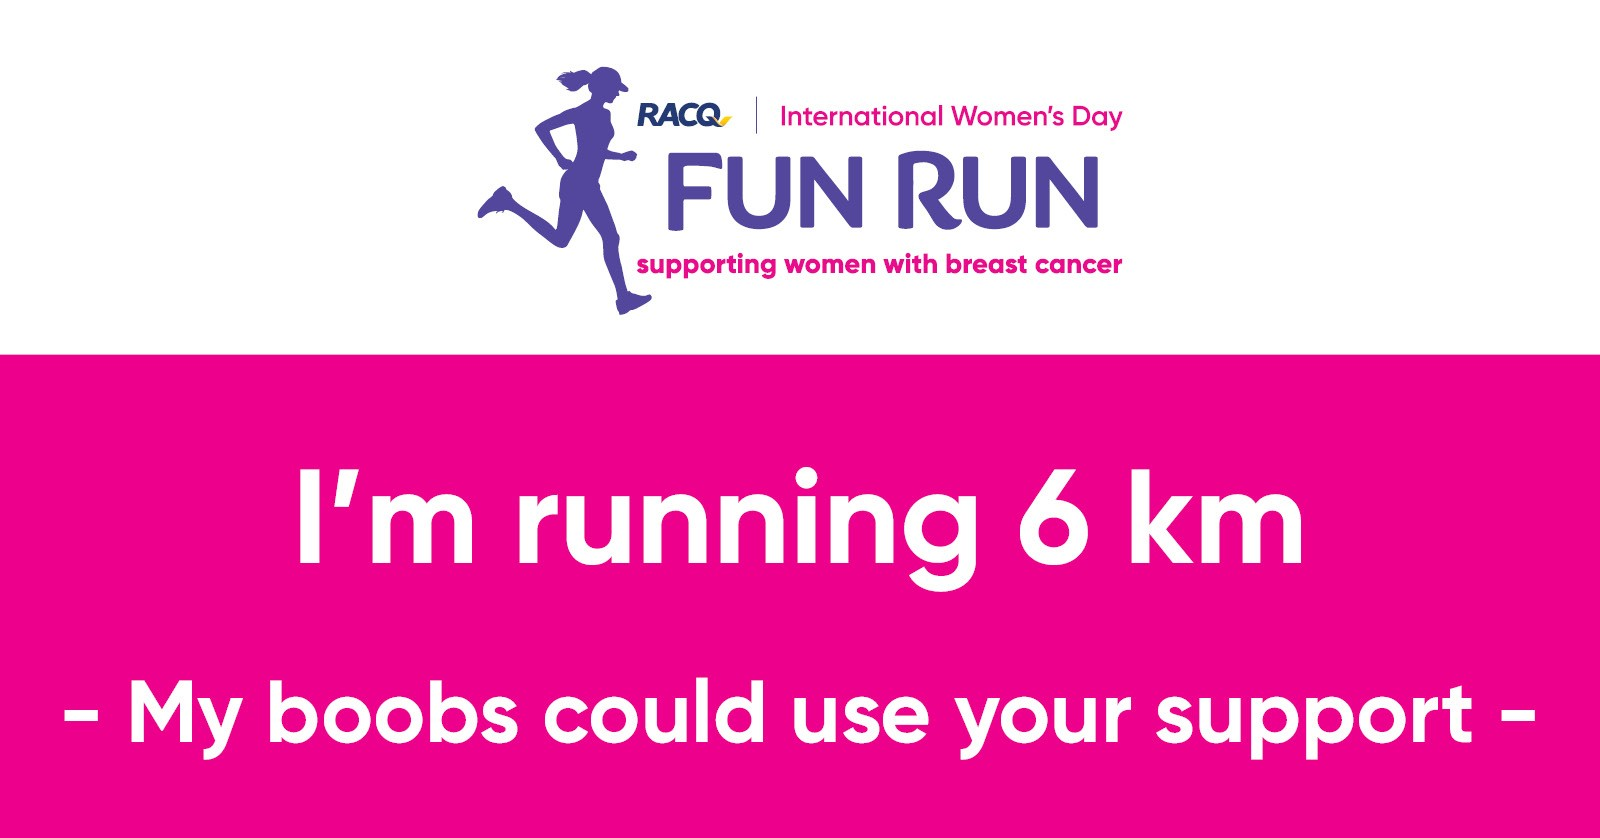 Facebook - I'm running 6 km - My boobs could use your support